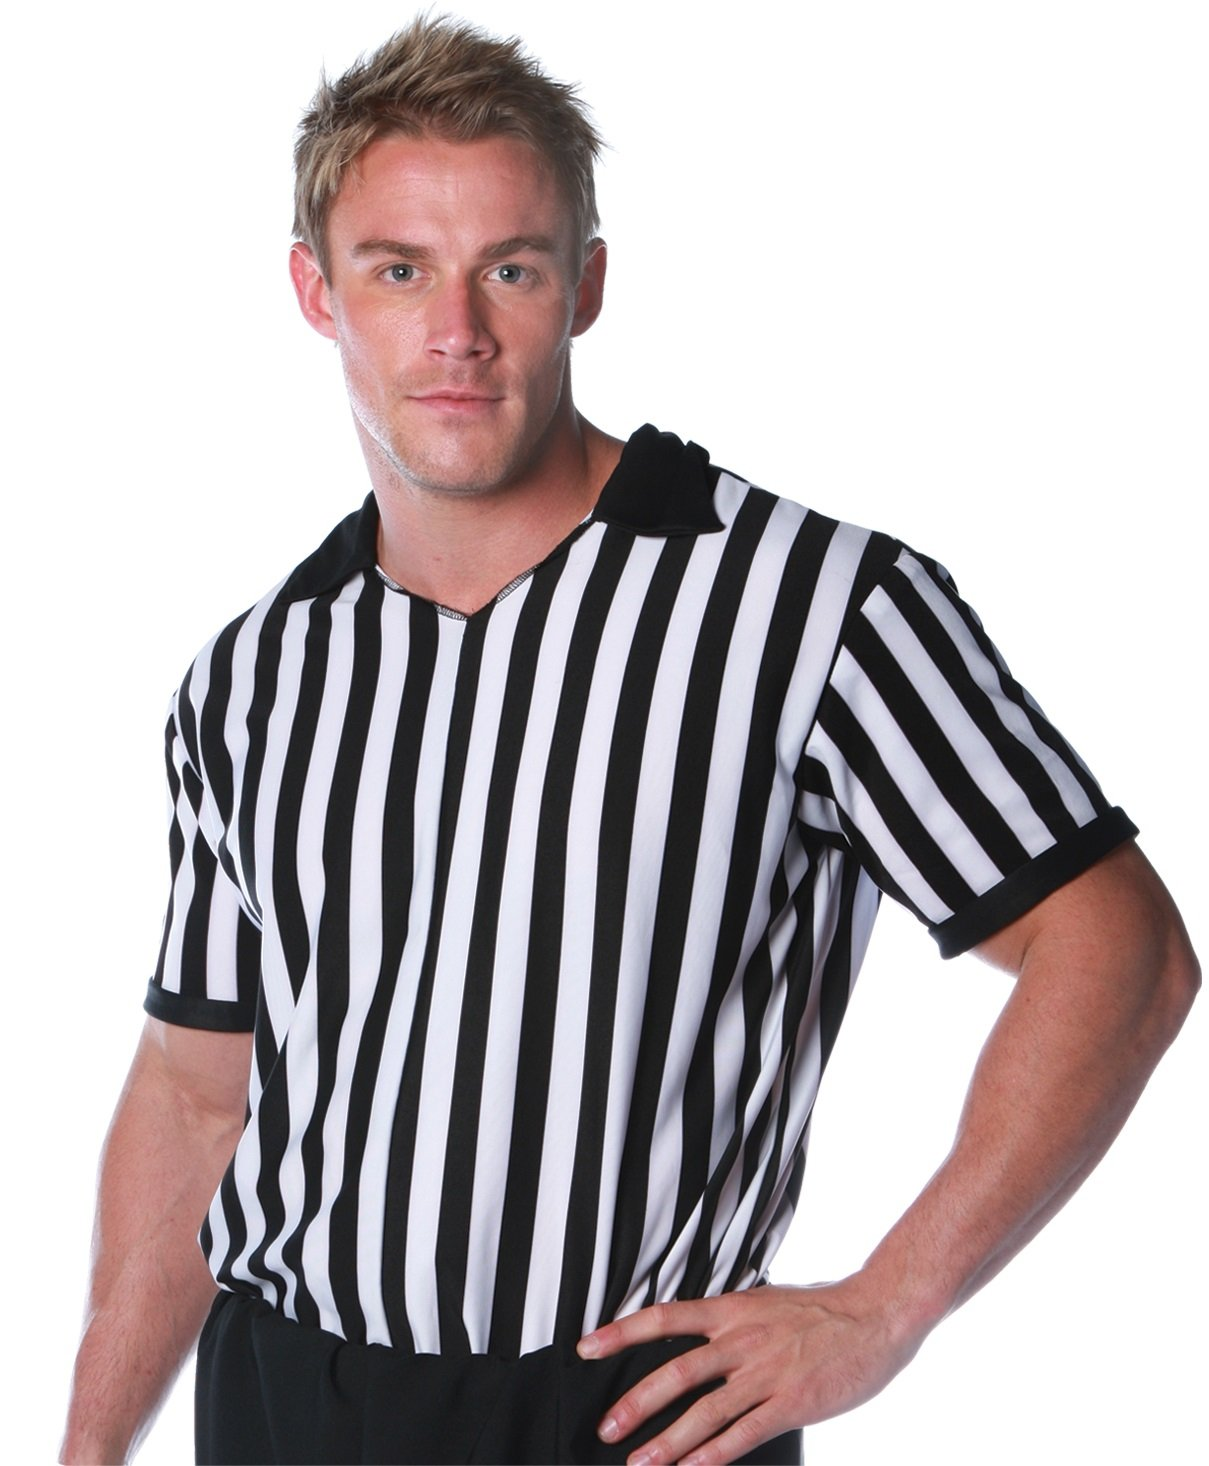 Underwraps Costumes Men's Referee Costume - Shirt Underwraps Child code